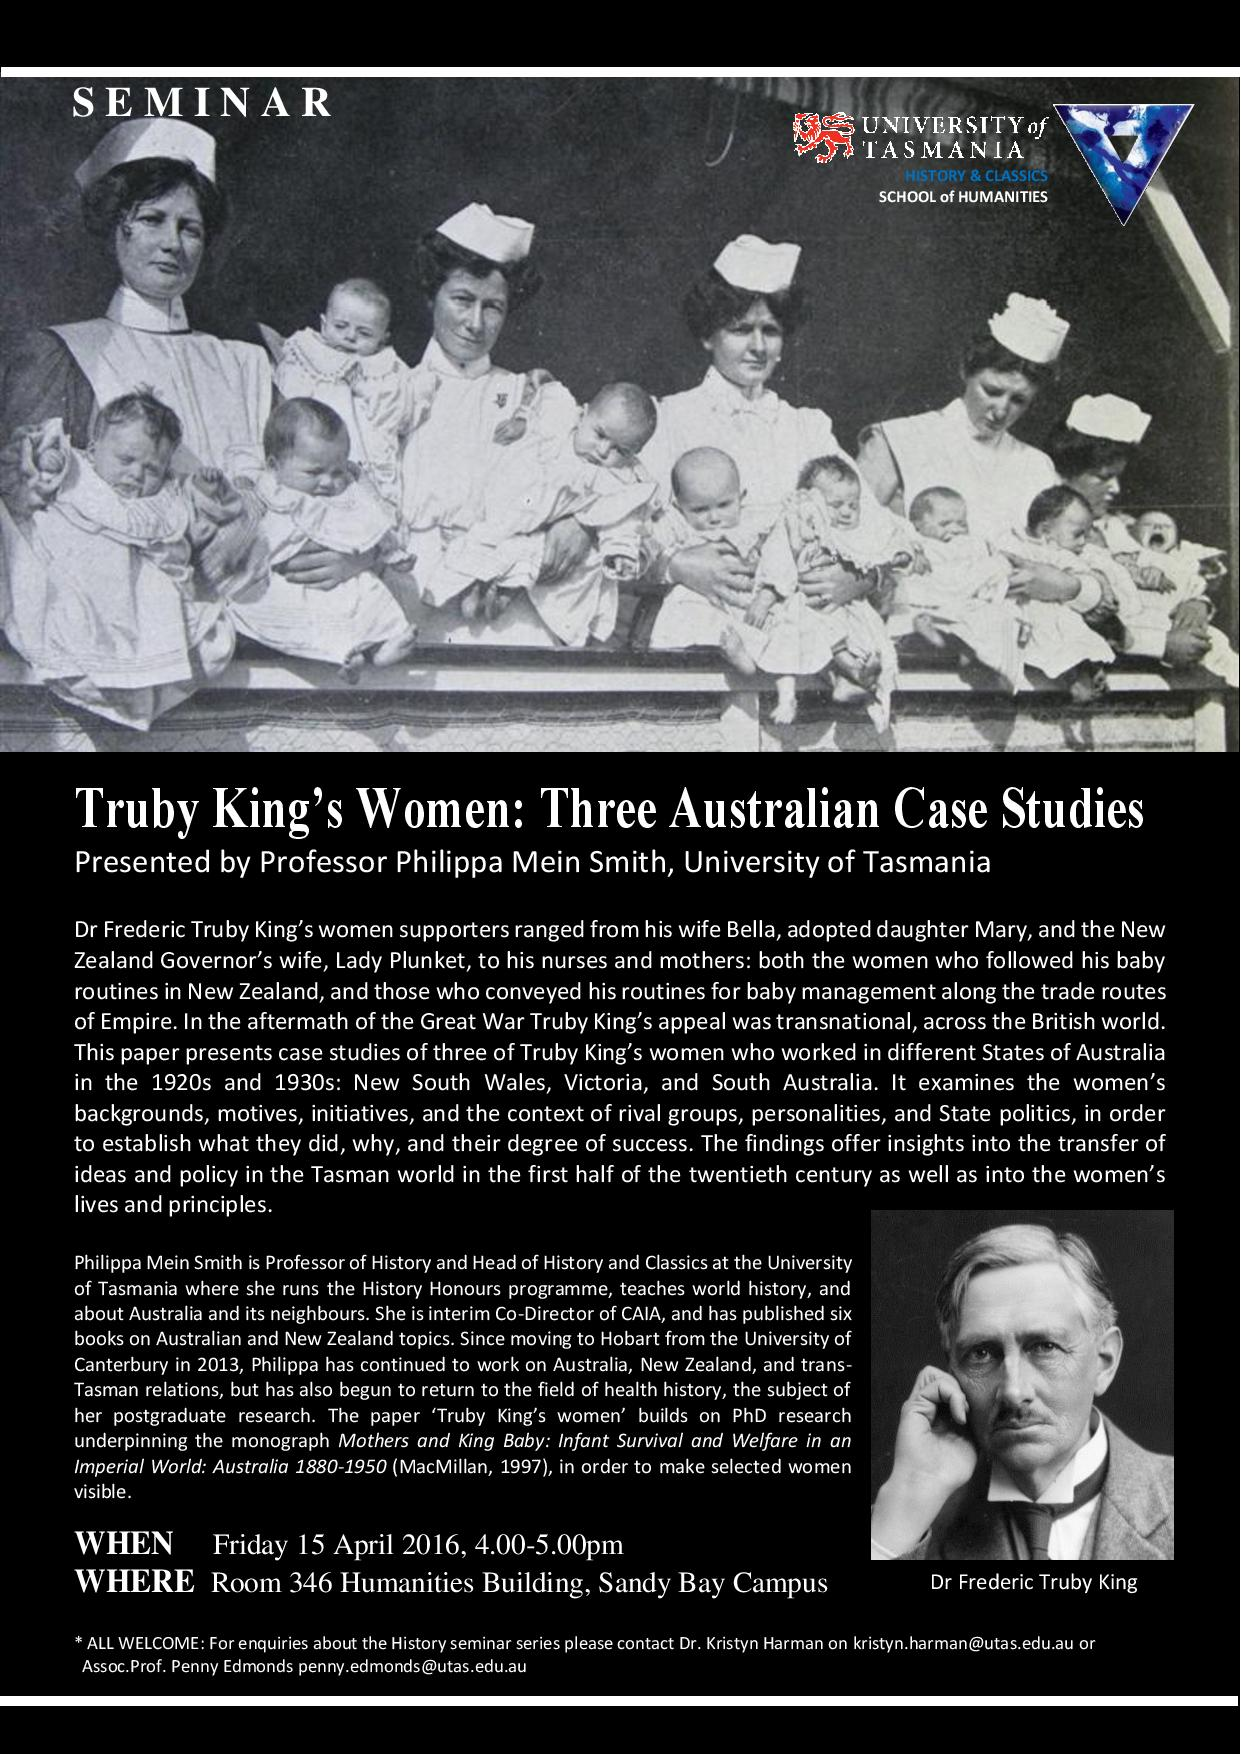 Truby King's Women